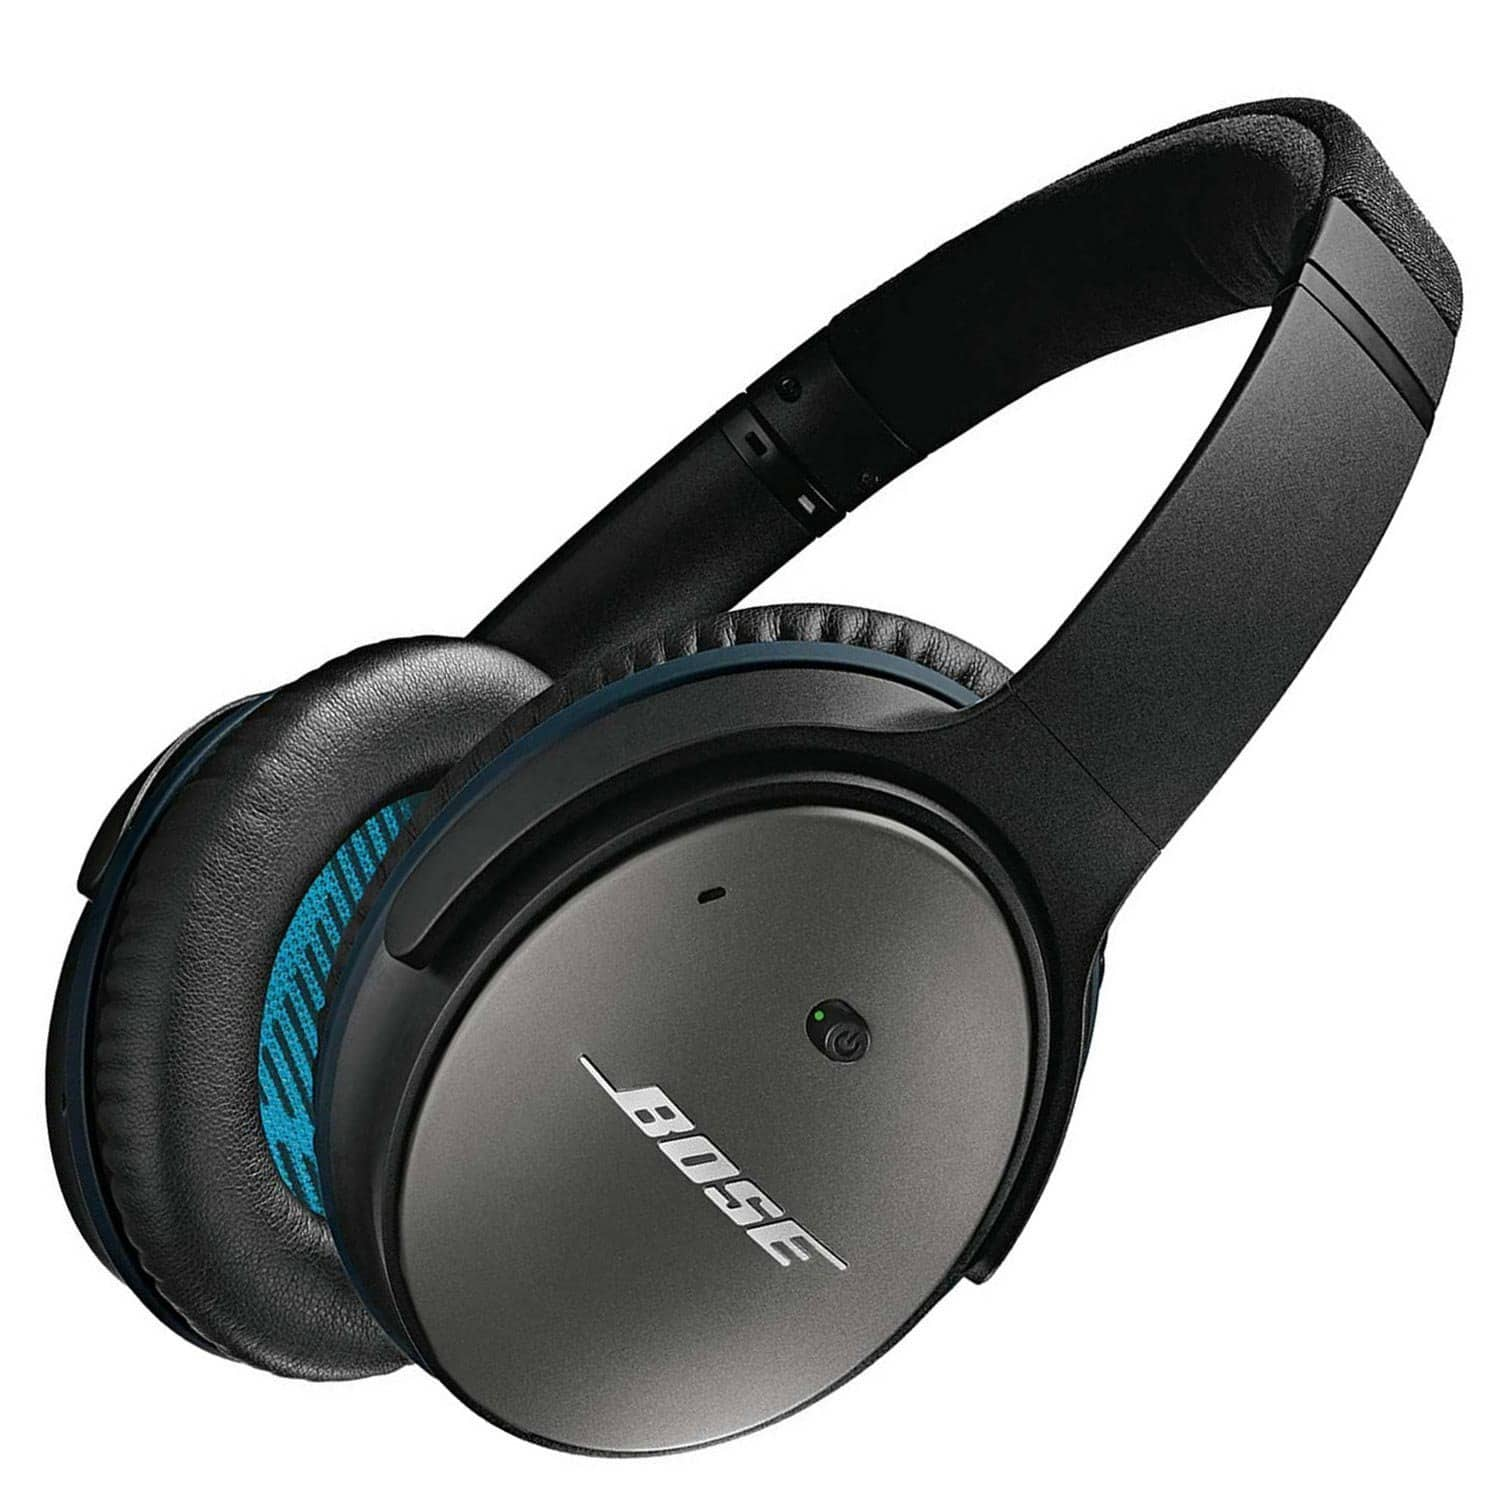 Target: Bose QuietComfort 25 Acoustic Headphones $179.99 or $169.99 w/REDcard *11/19 - 11/22*